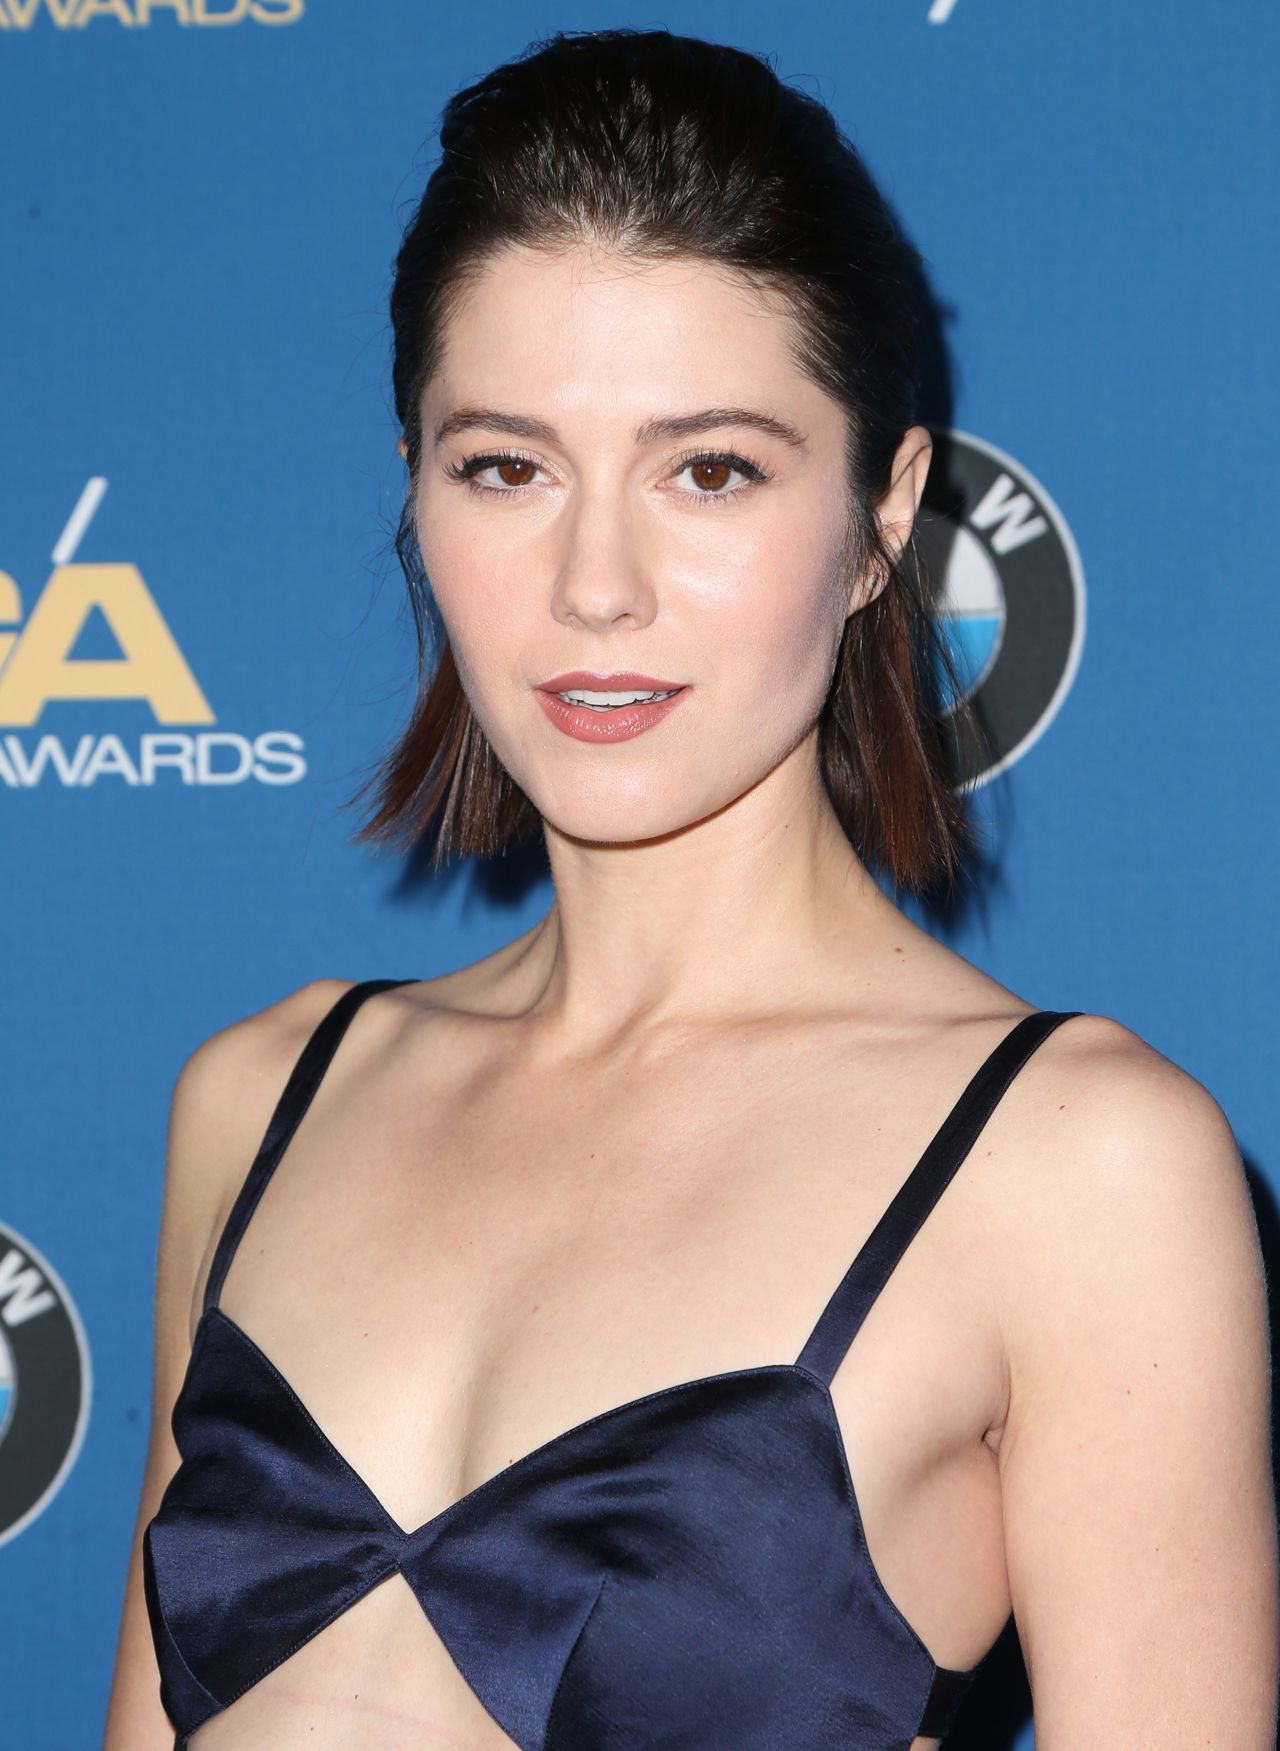 from Kamryn porn fuck pics of mary elizabeth winstead